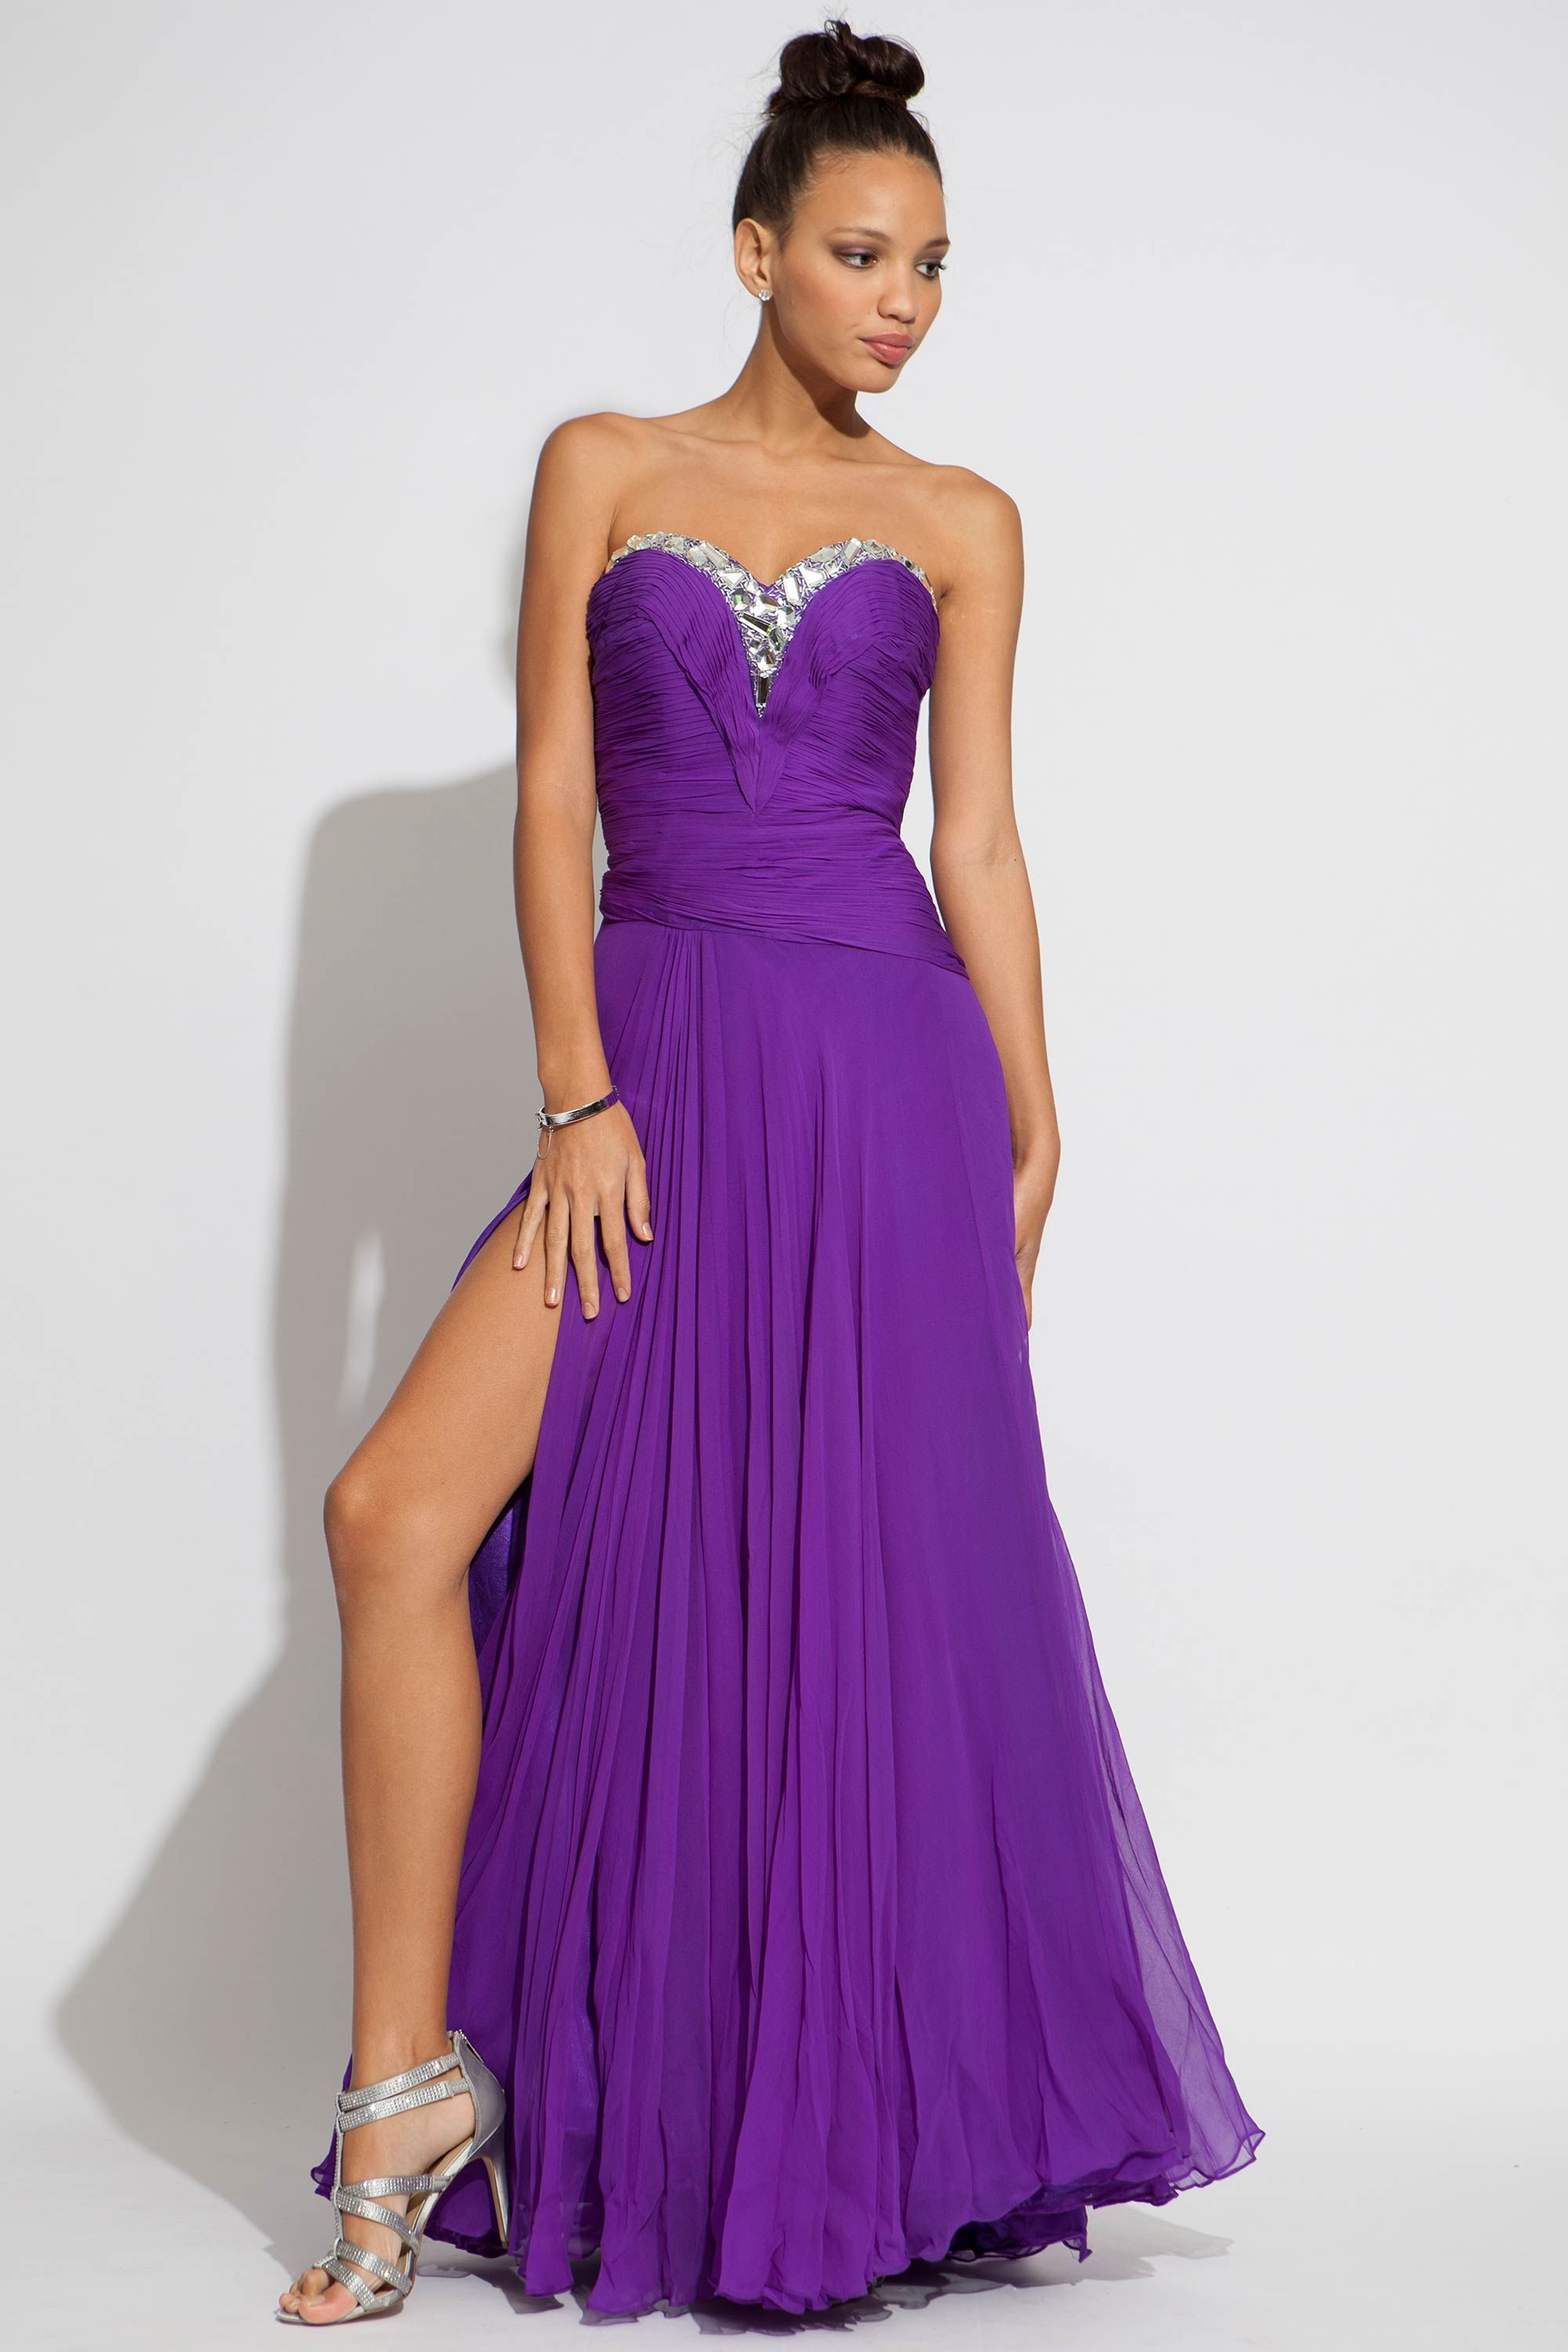 Jovani 6669 | Jovani Dress 6669 | Cool stuff to buy | Pinterest